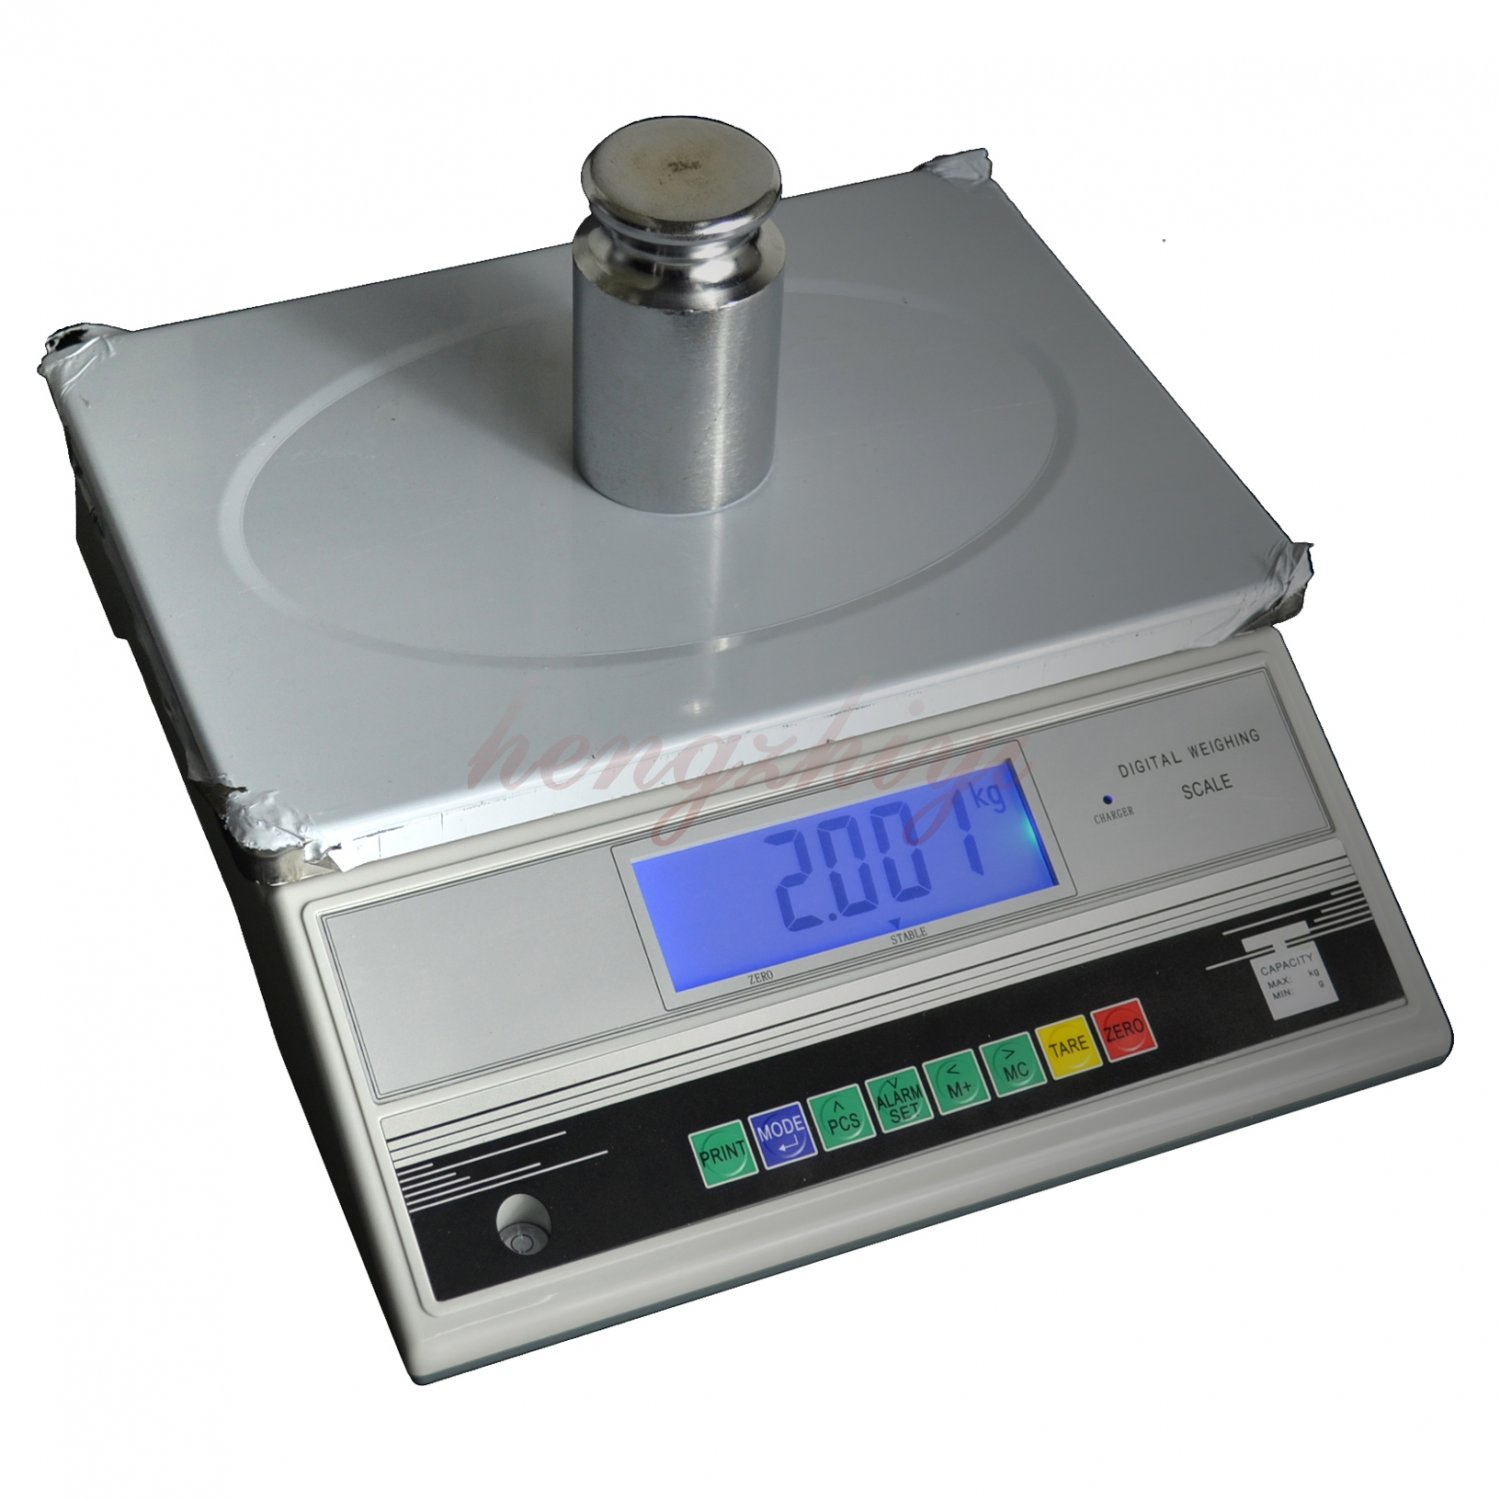 15kg x 0.5g Precision Heavy Weighing Digital Industrial Scale Balance w Counting, Free Shipping